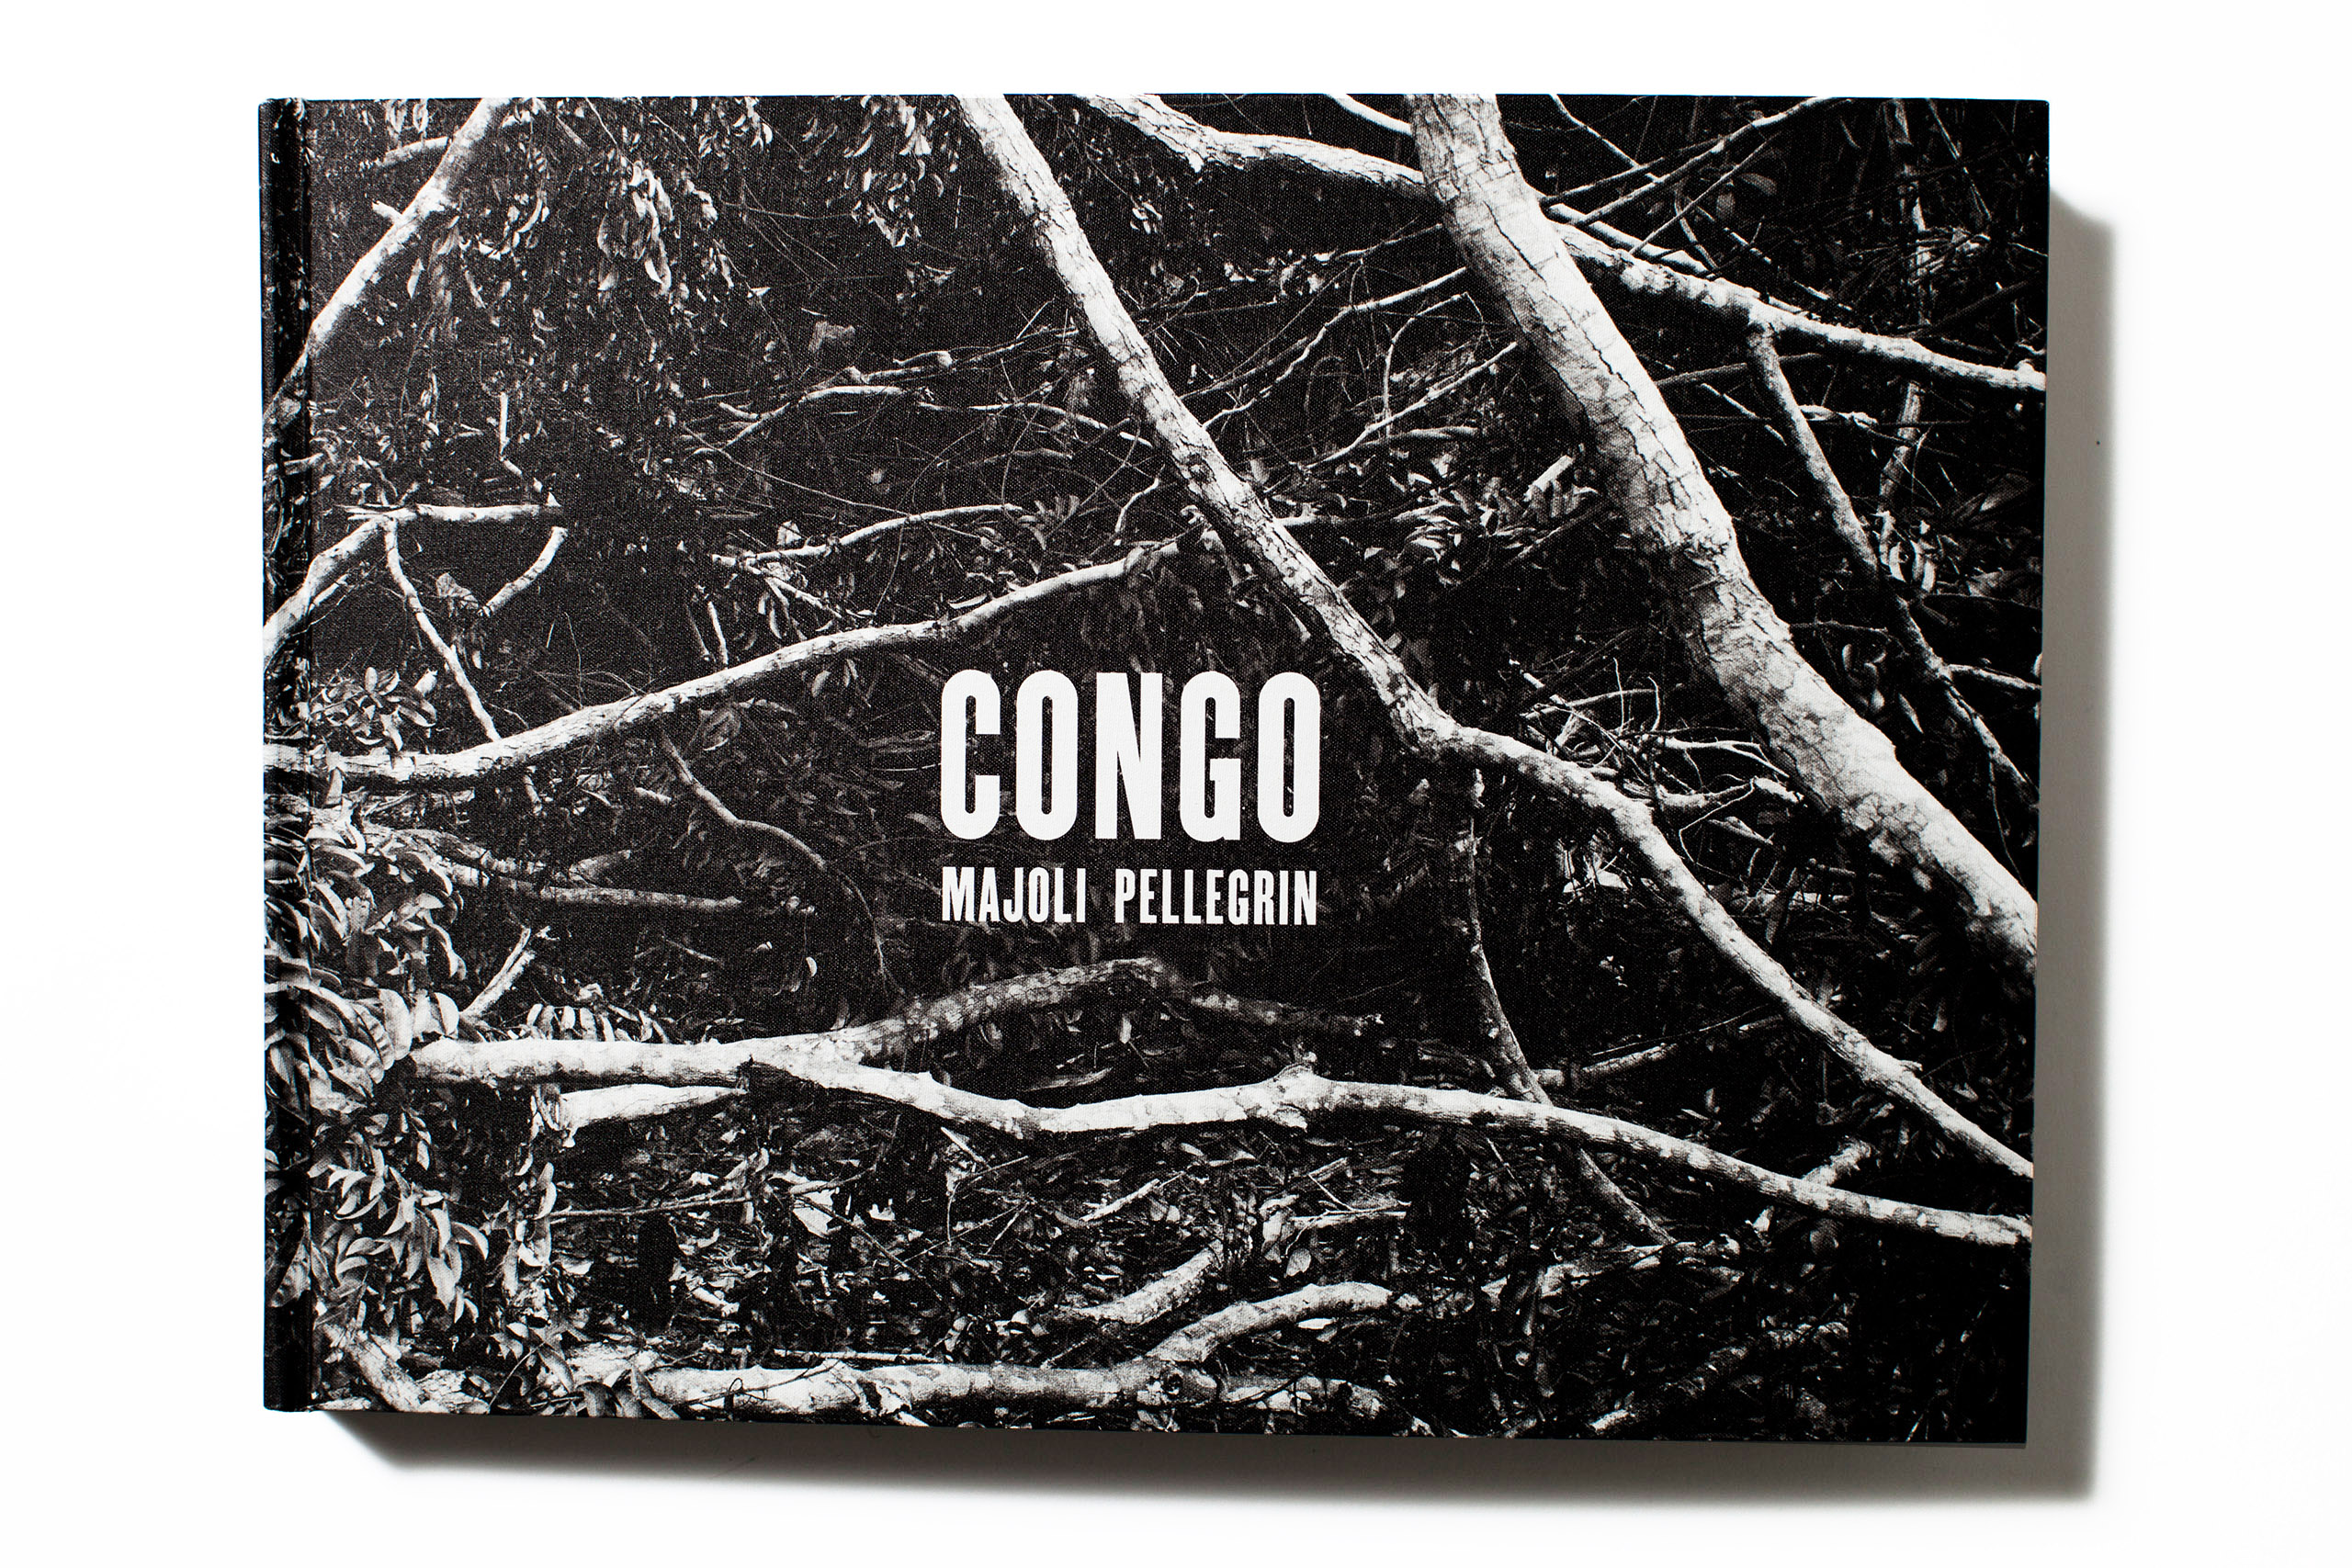 """<a href=""""""""><i><b>                                   Congo                                   </i></b></a> by                                   Paolo Pellegrin and Alex Majoli, published by Aperture, selected by Alice Gabriner, International Photo Editor, <i>TIME</i>."""